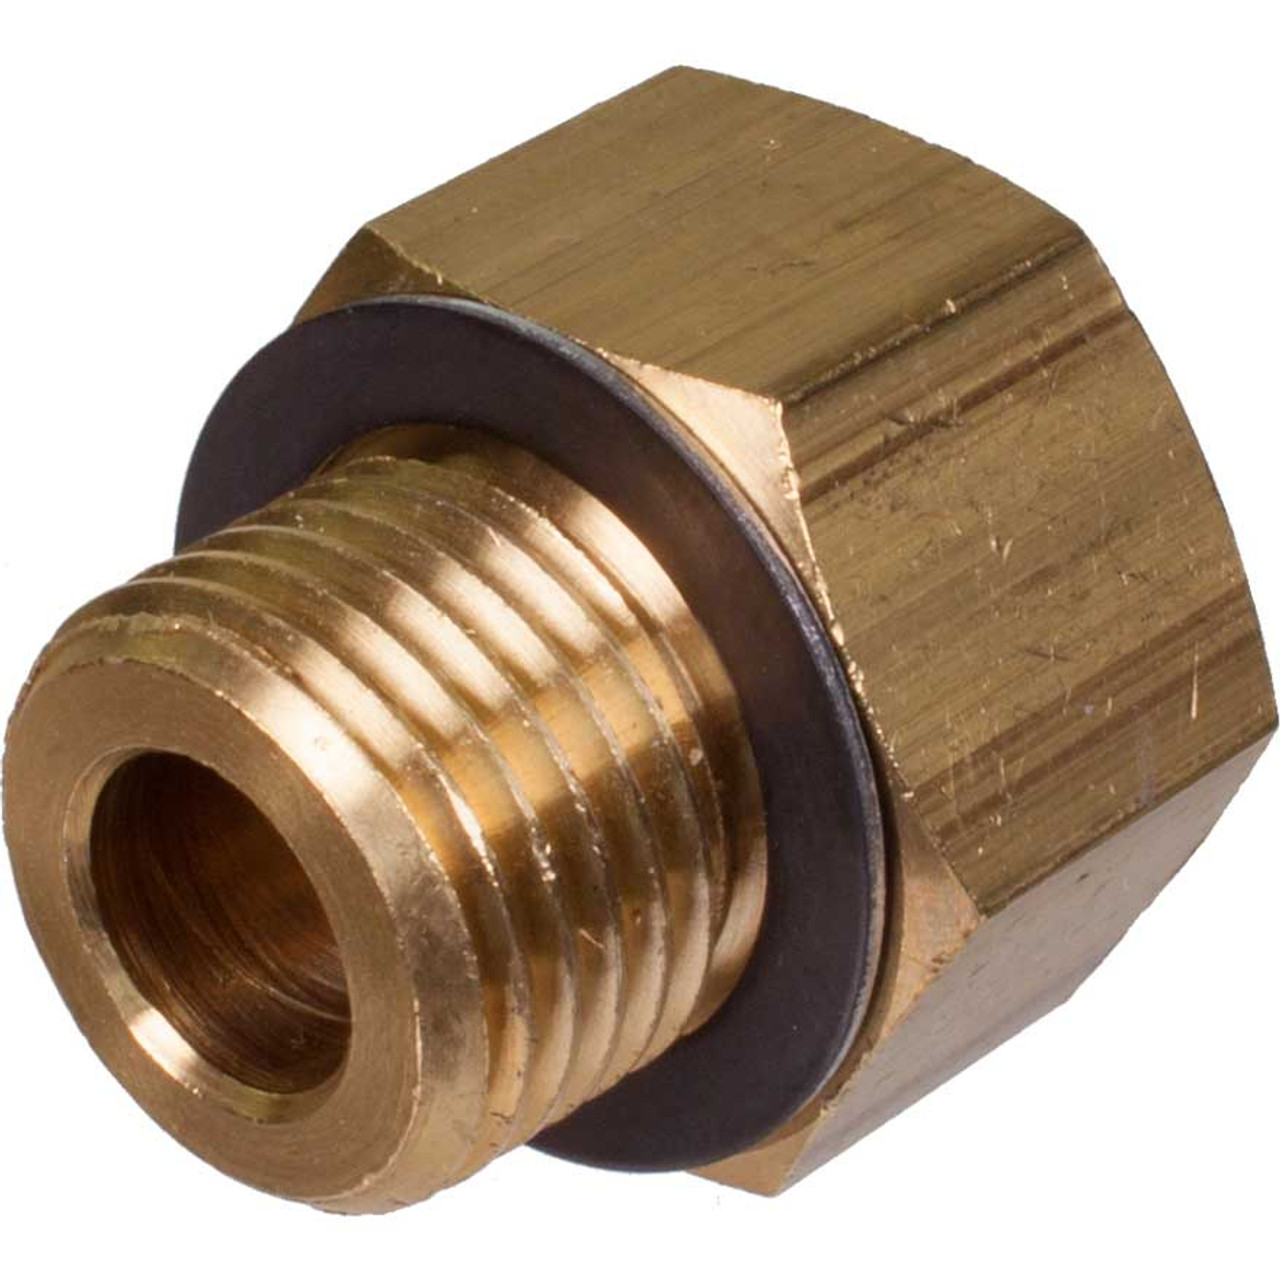 Metric Adapter, 1/8 inch NPT Female to M16X1.5 Male